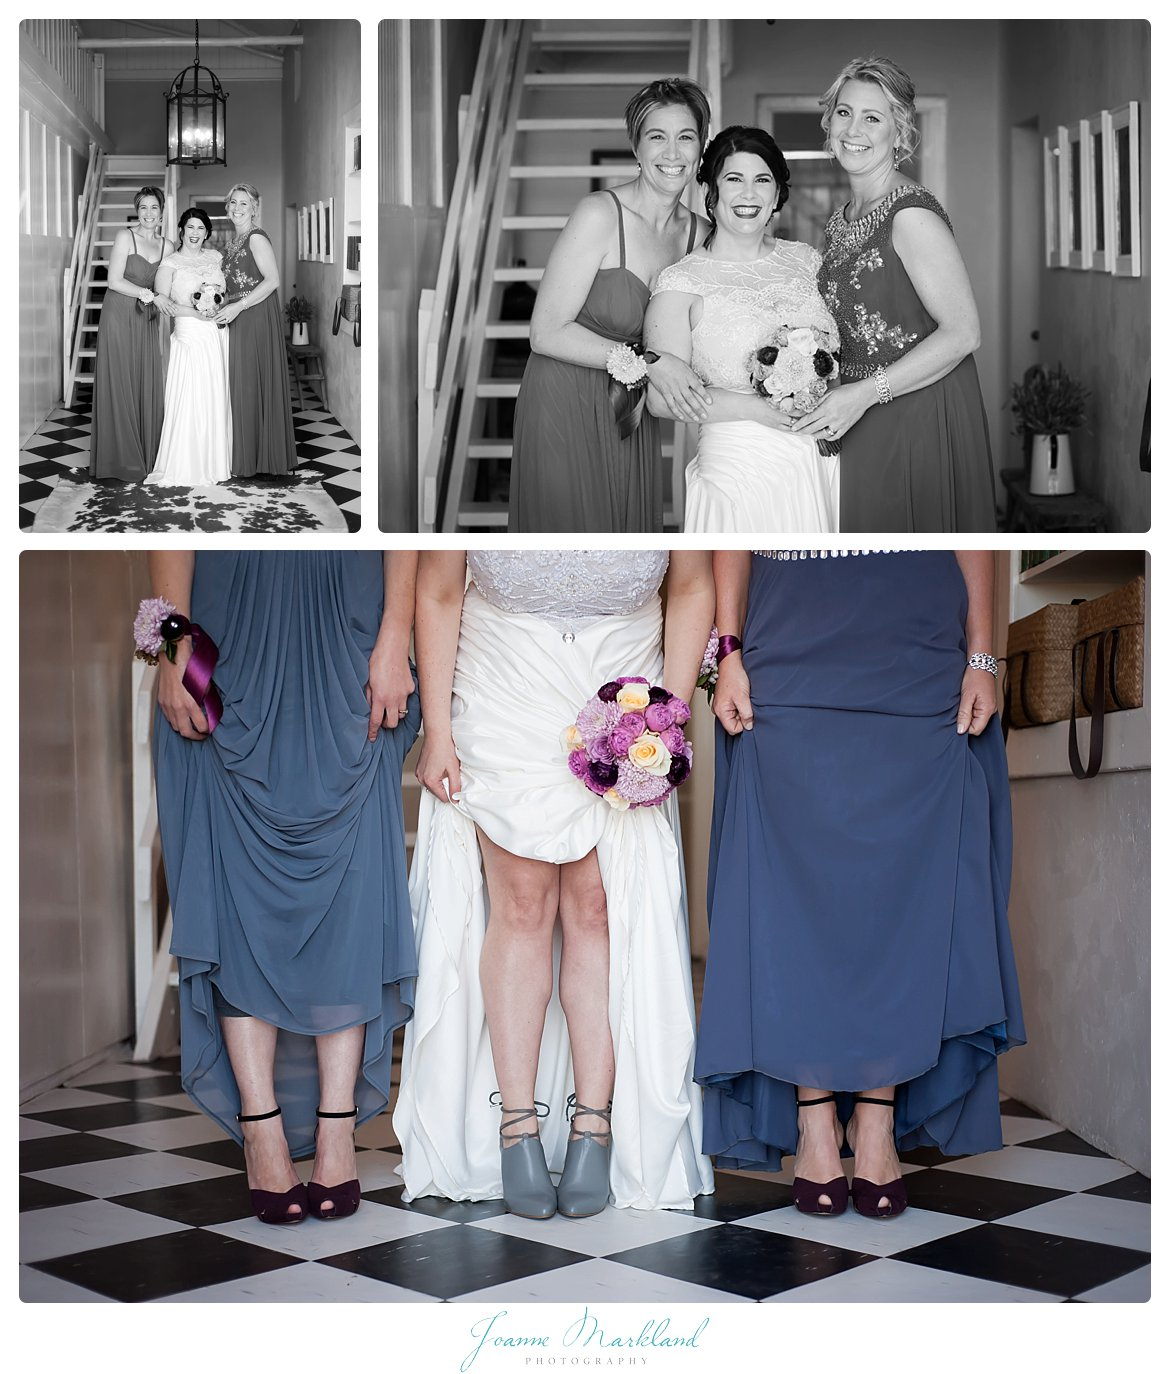 boorwater-wedding-hopefield-west-coast-cape-town-joanne-markland-photography-013